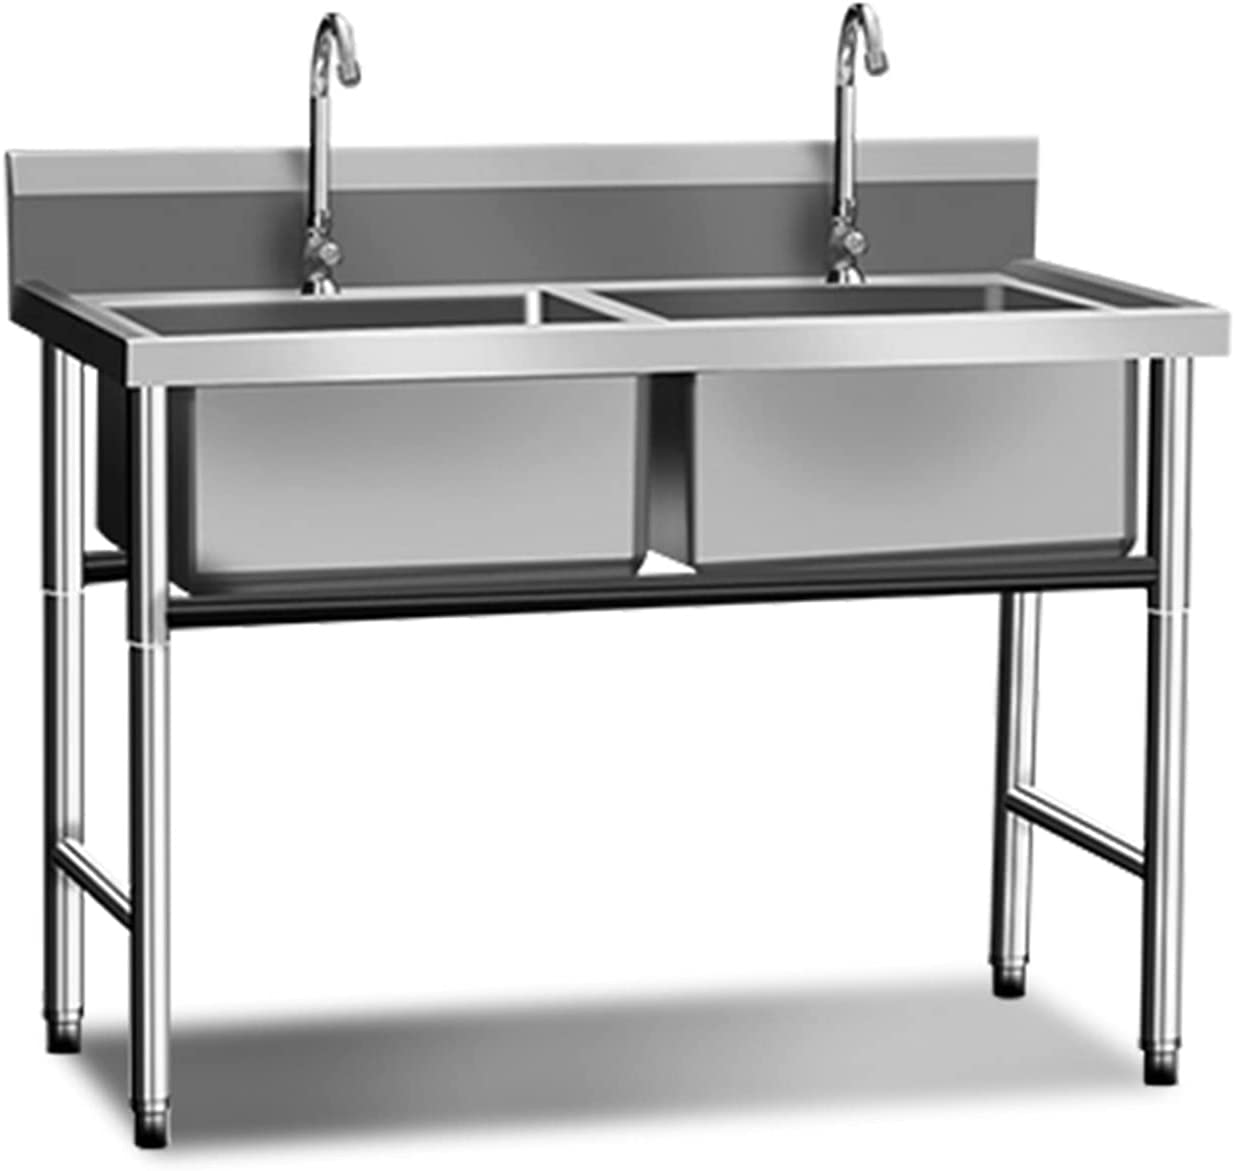 Japan's largest assortment Commercial 201 Stainless Steel Sink Free Standing Max 67% OFF 2 Compartment